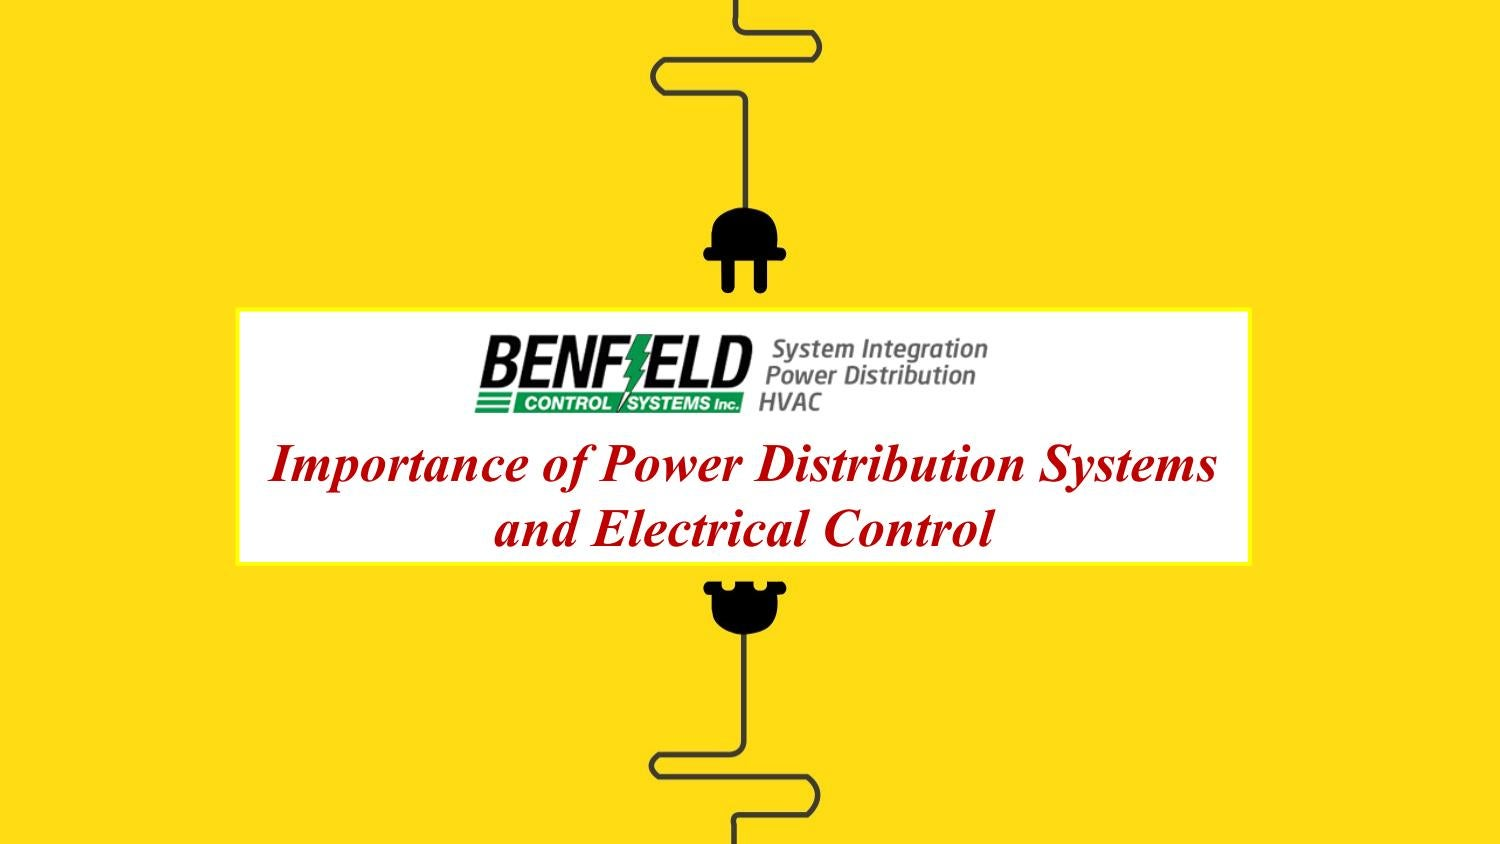 Importance of Power Distribution Systems and Electrical Control by